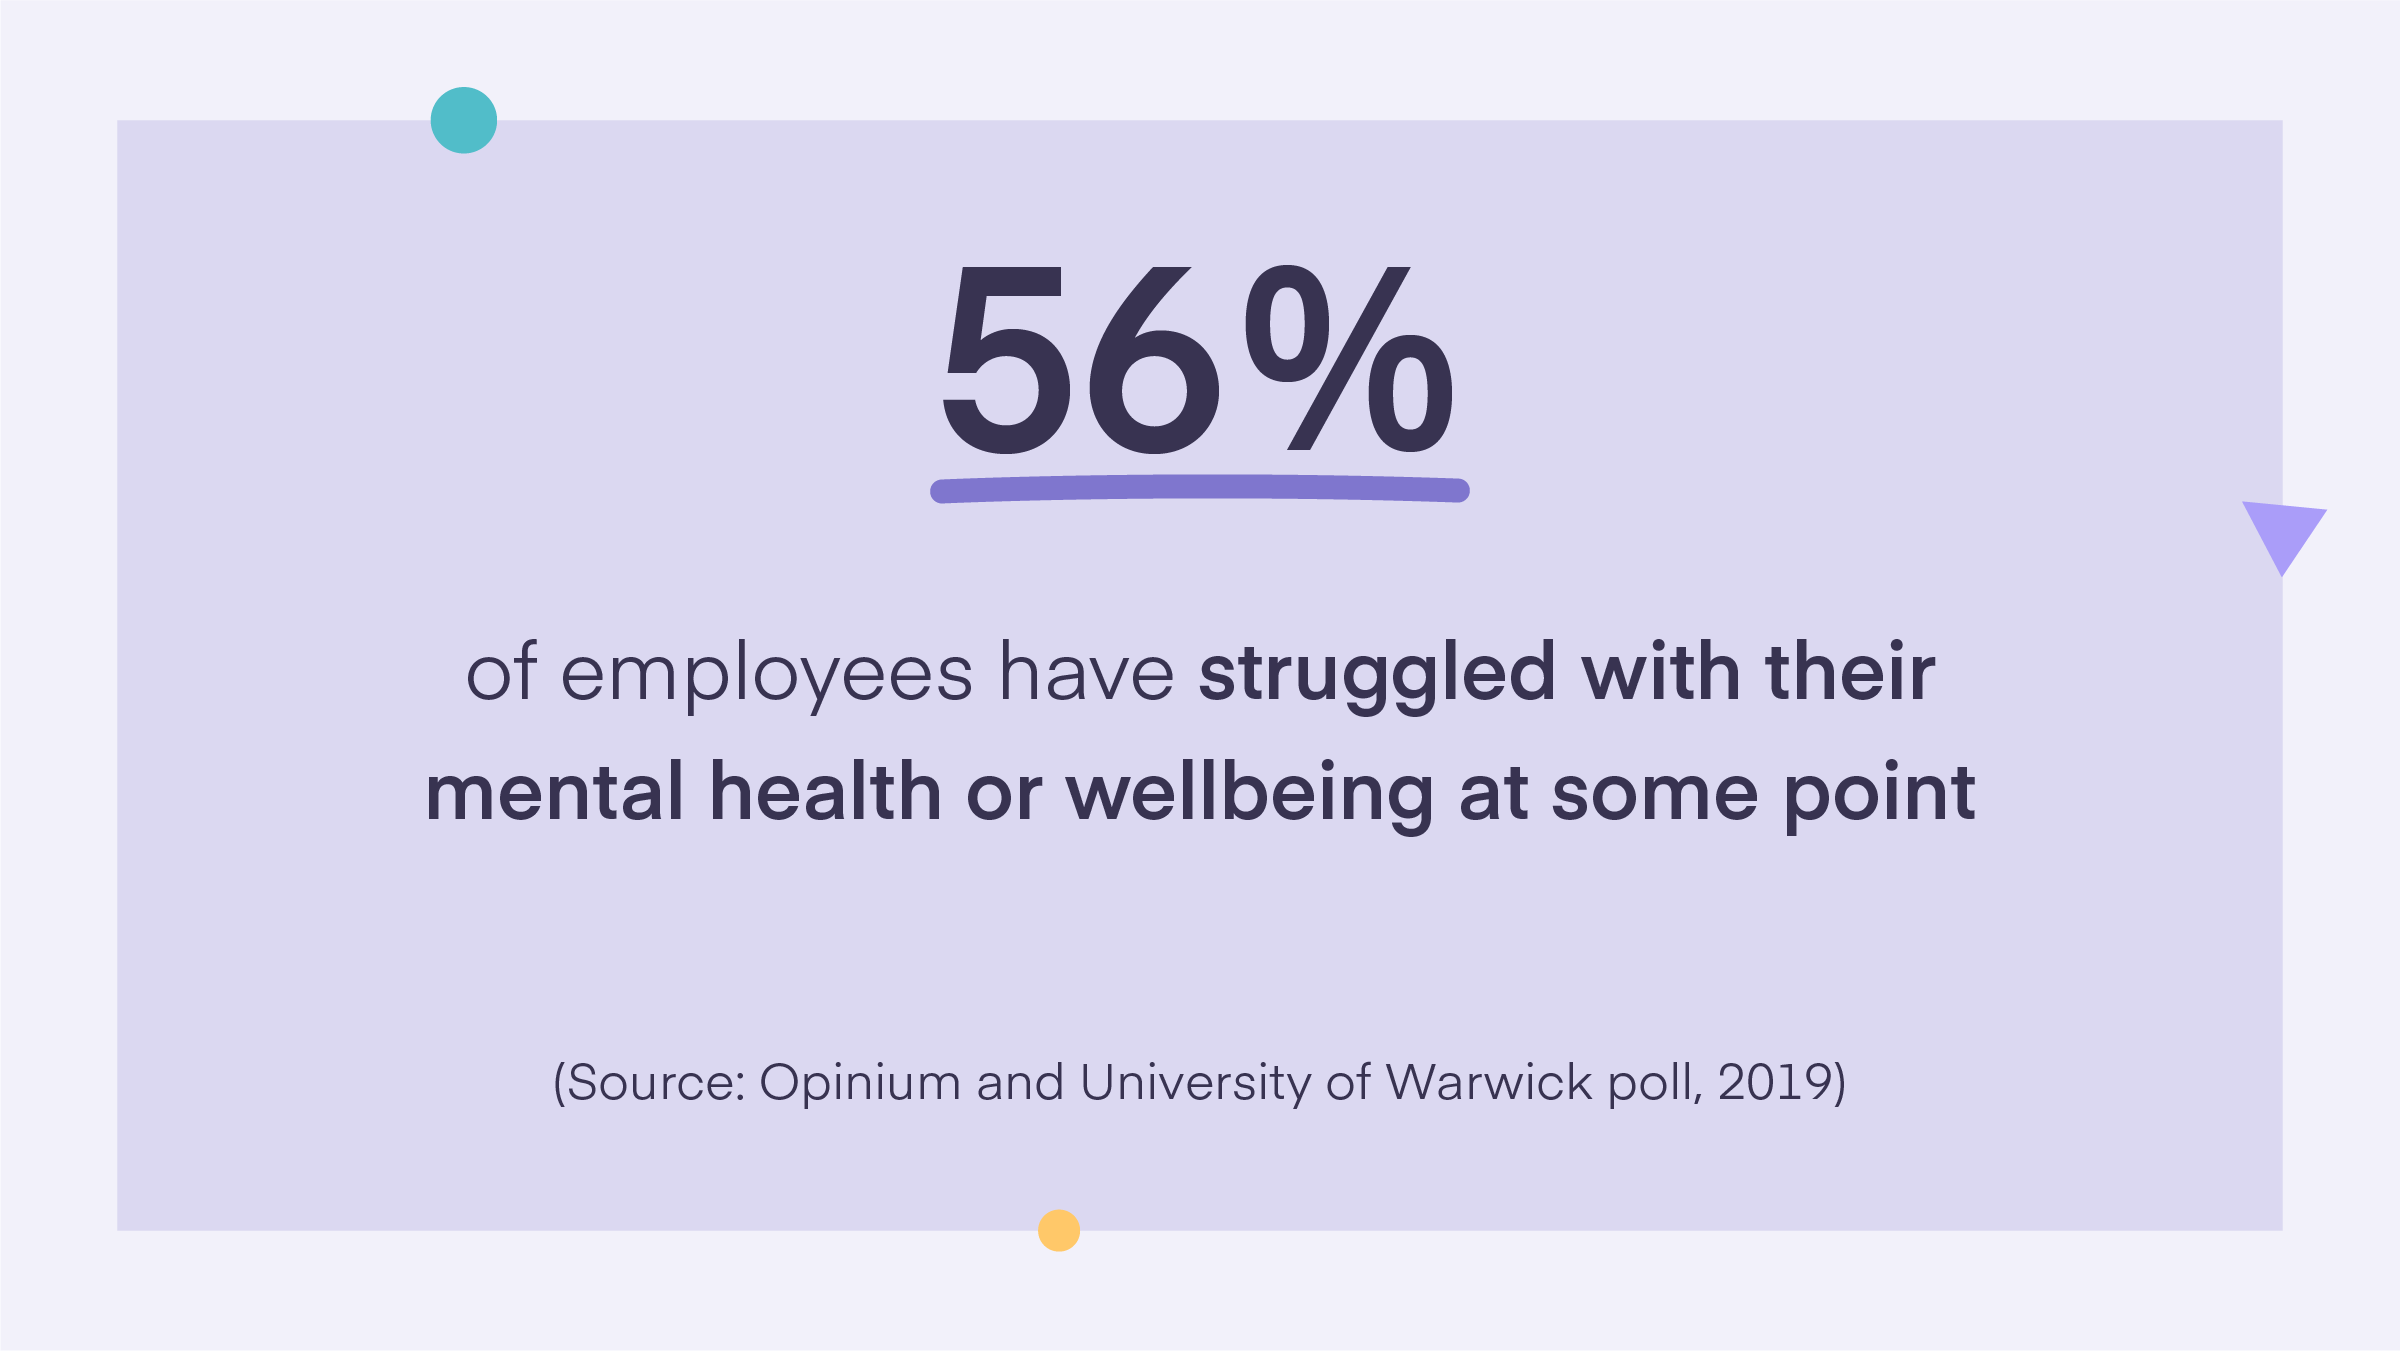 56% of employees have struggled with their mental health or wellbeing at some point